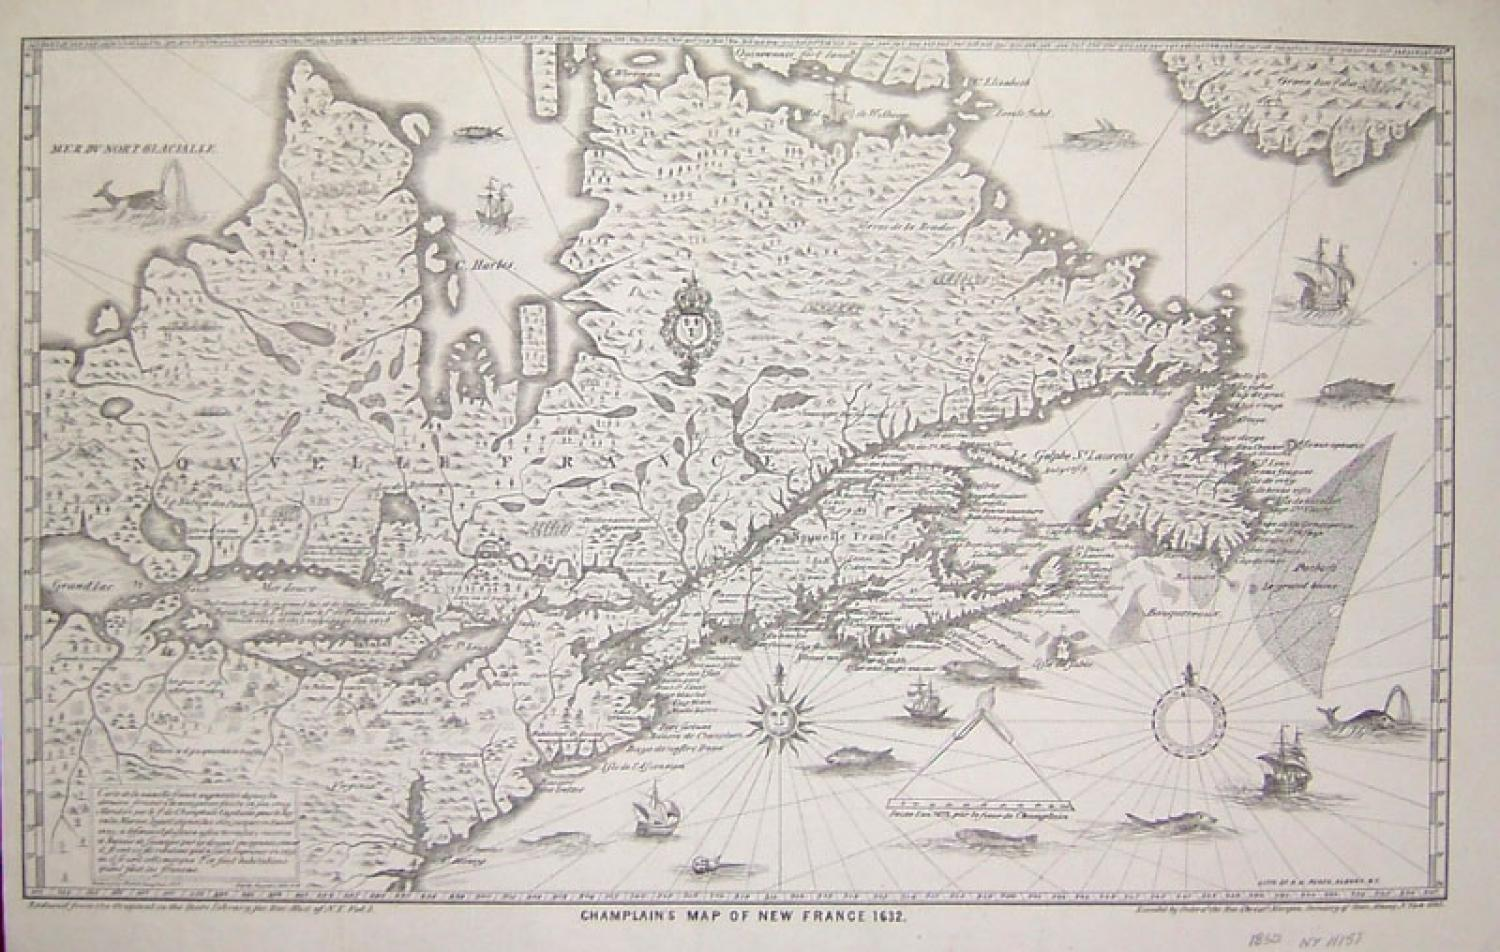 SOLD Champlain's Map of New France 1632